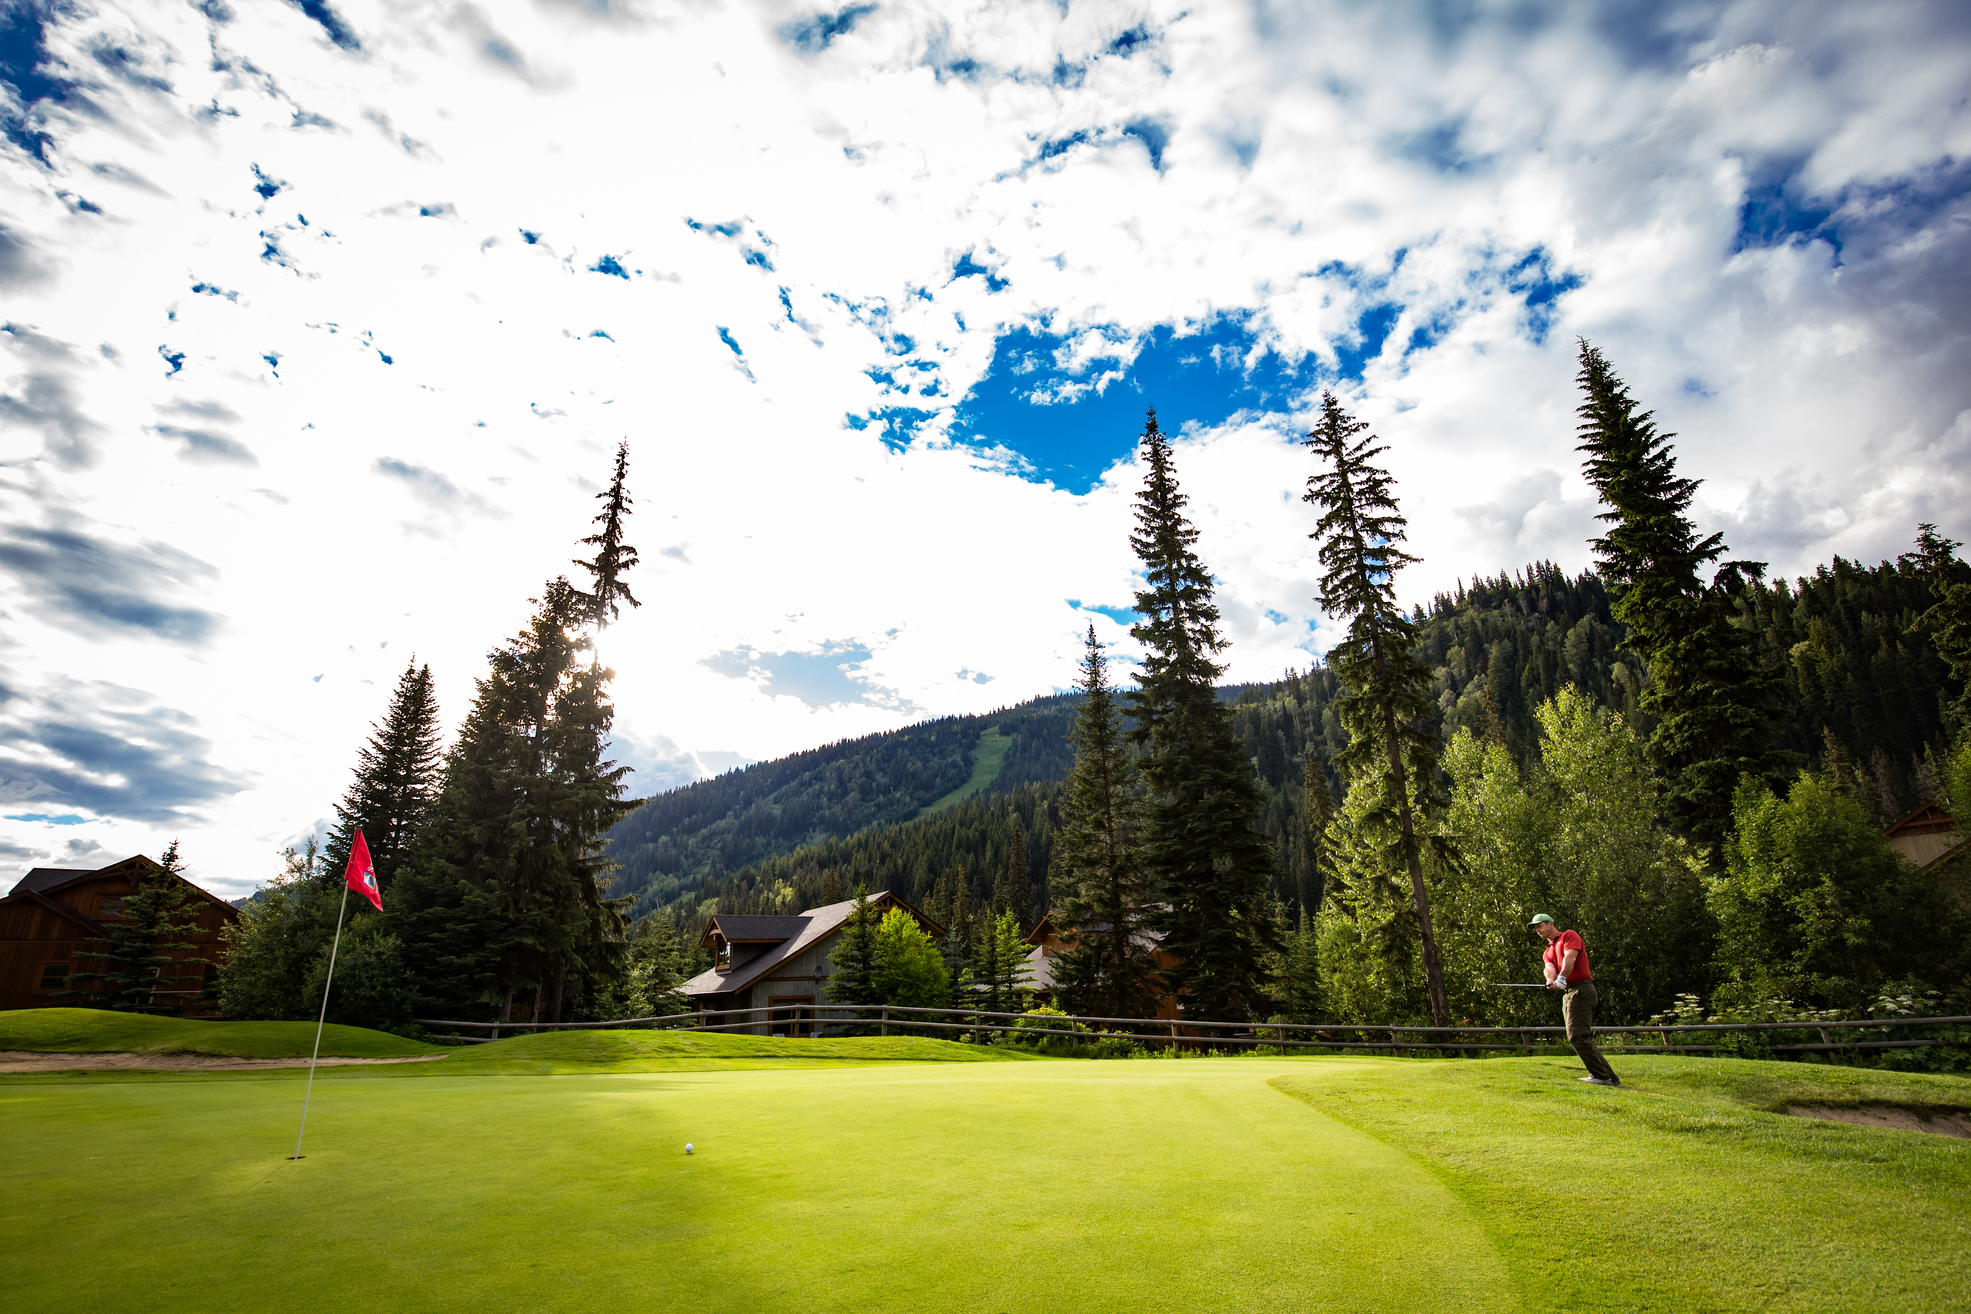 B100 & Sun Peaks Golf Course present Rich's Friday Foursome